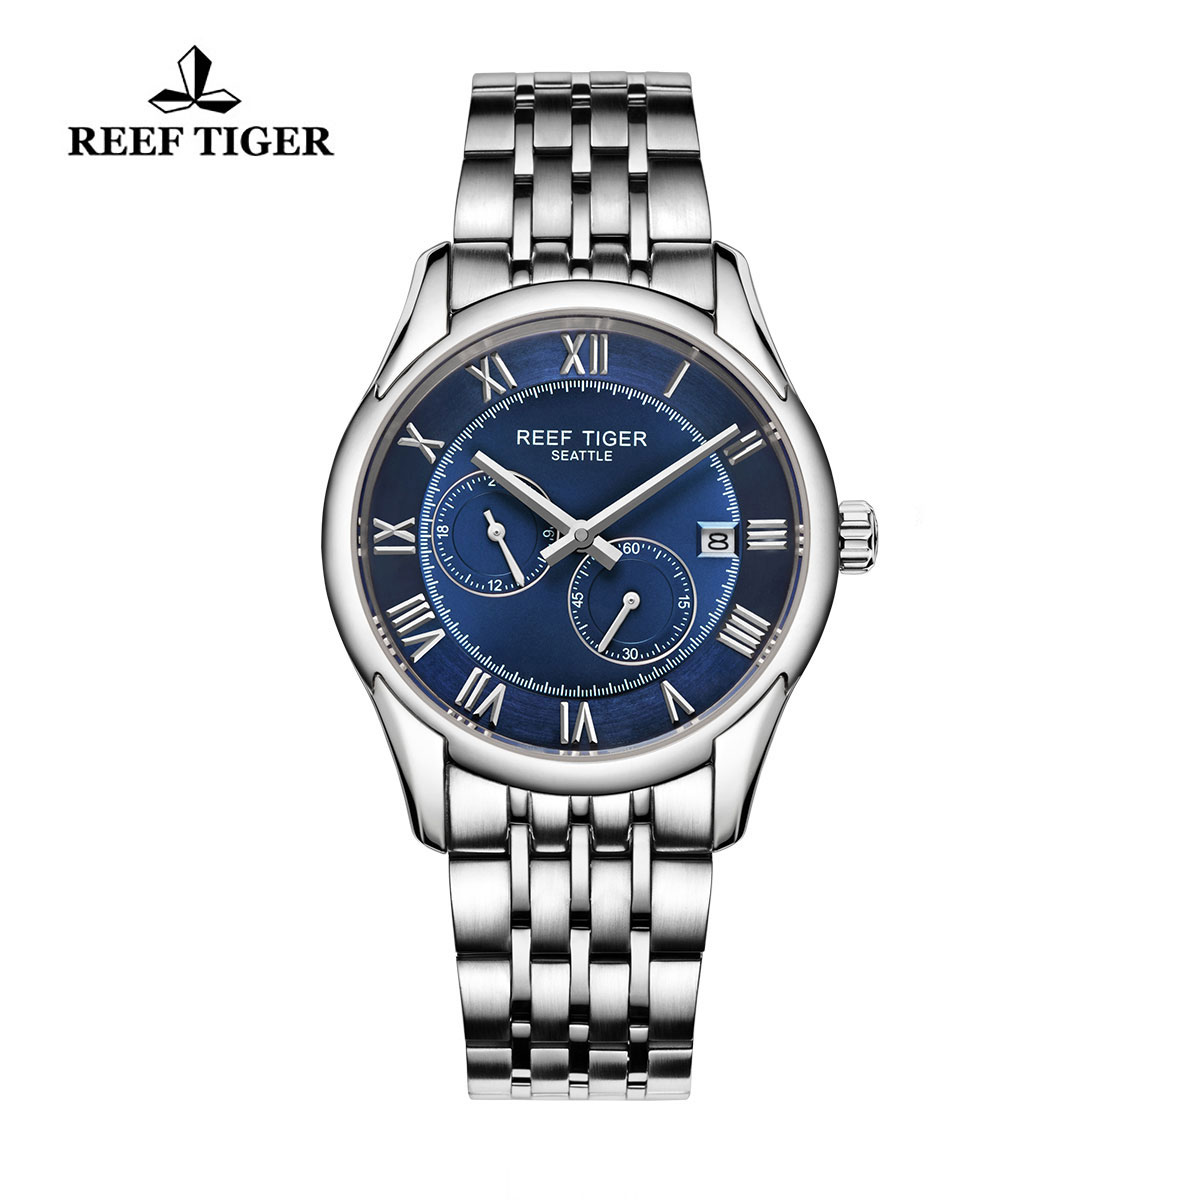 Reef Tiger Business Watch Stainless Steel Black Dial Automatic Watch RGA165-YLY